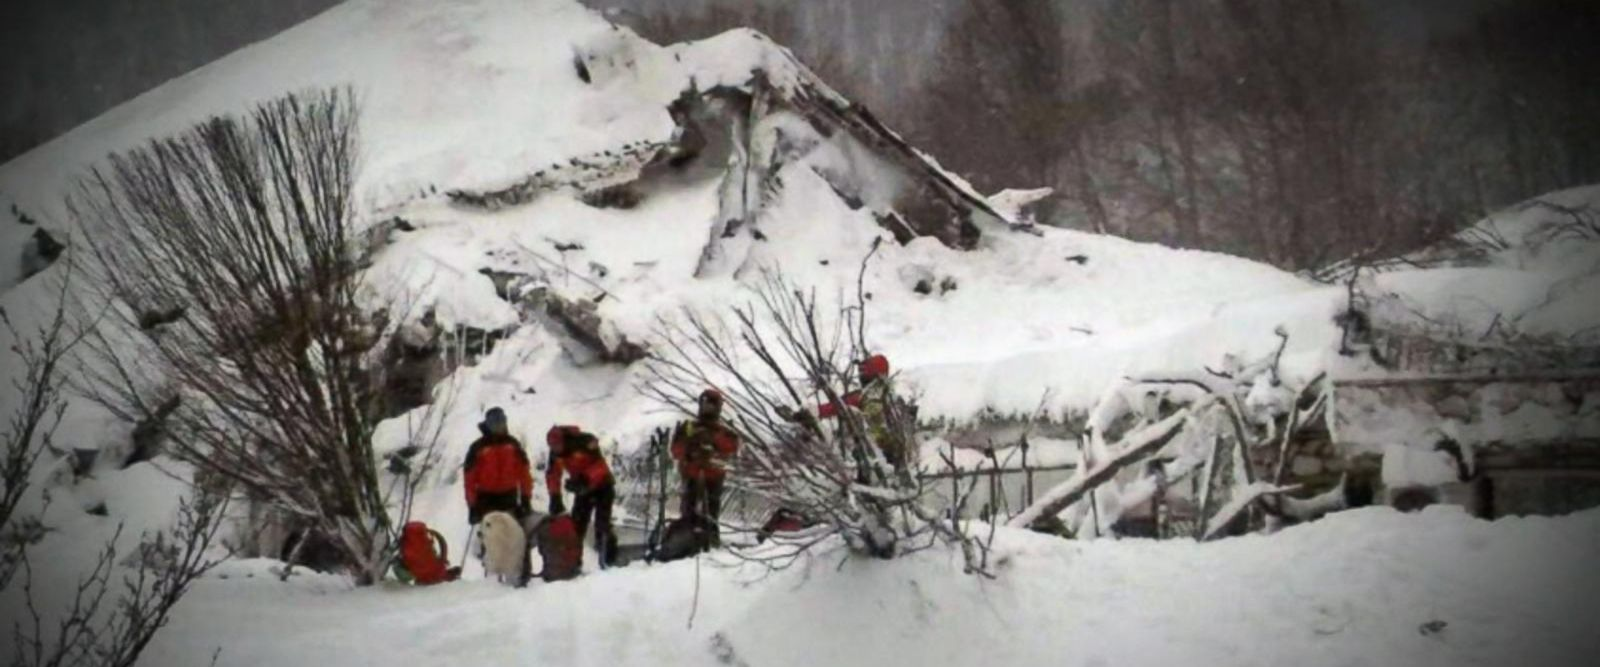 VIDEO: Miraculous Stories of Survival After an Avalanche Buries a Luxury Hotel in Italy